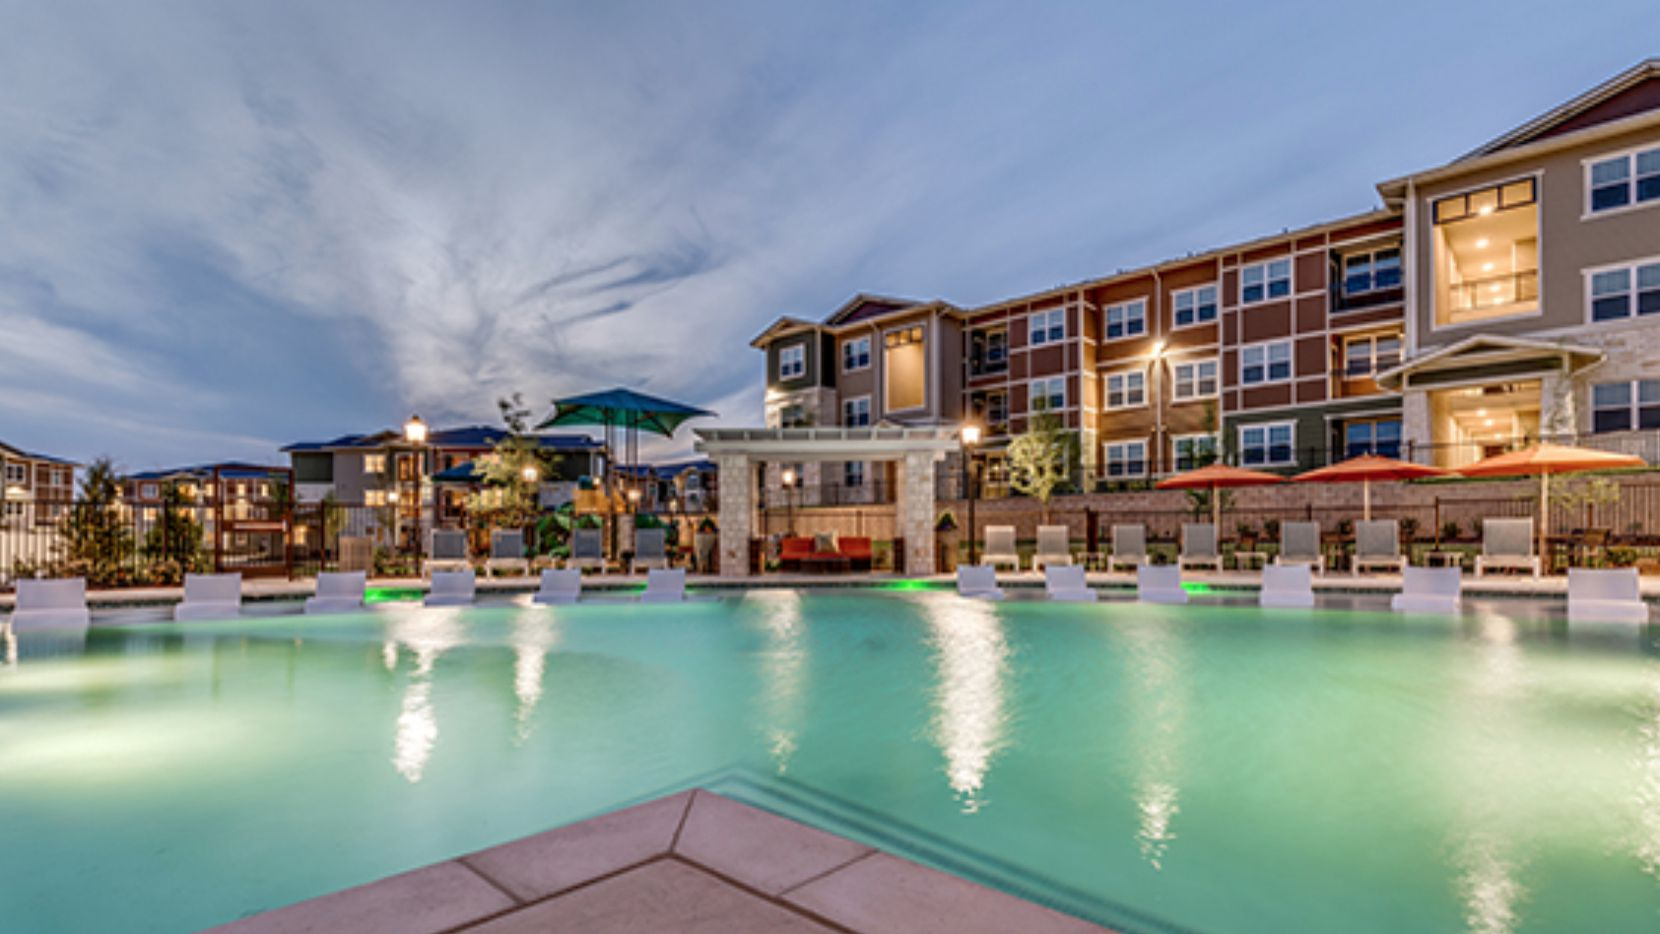 NRP Group operates more than 80 rental communities in Texas, including the 2900 Broadmoor in Fort Worth.